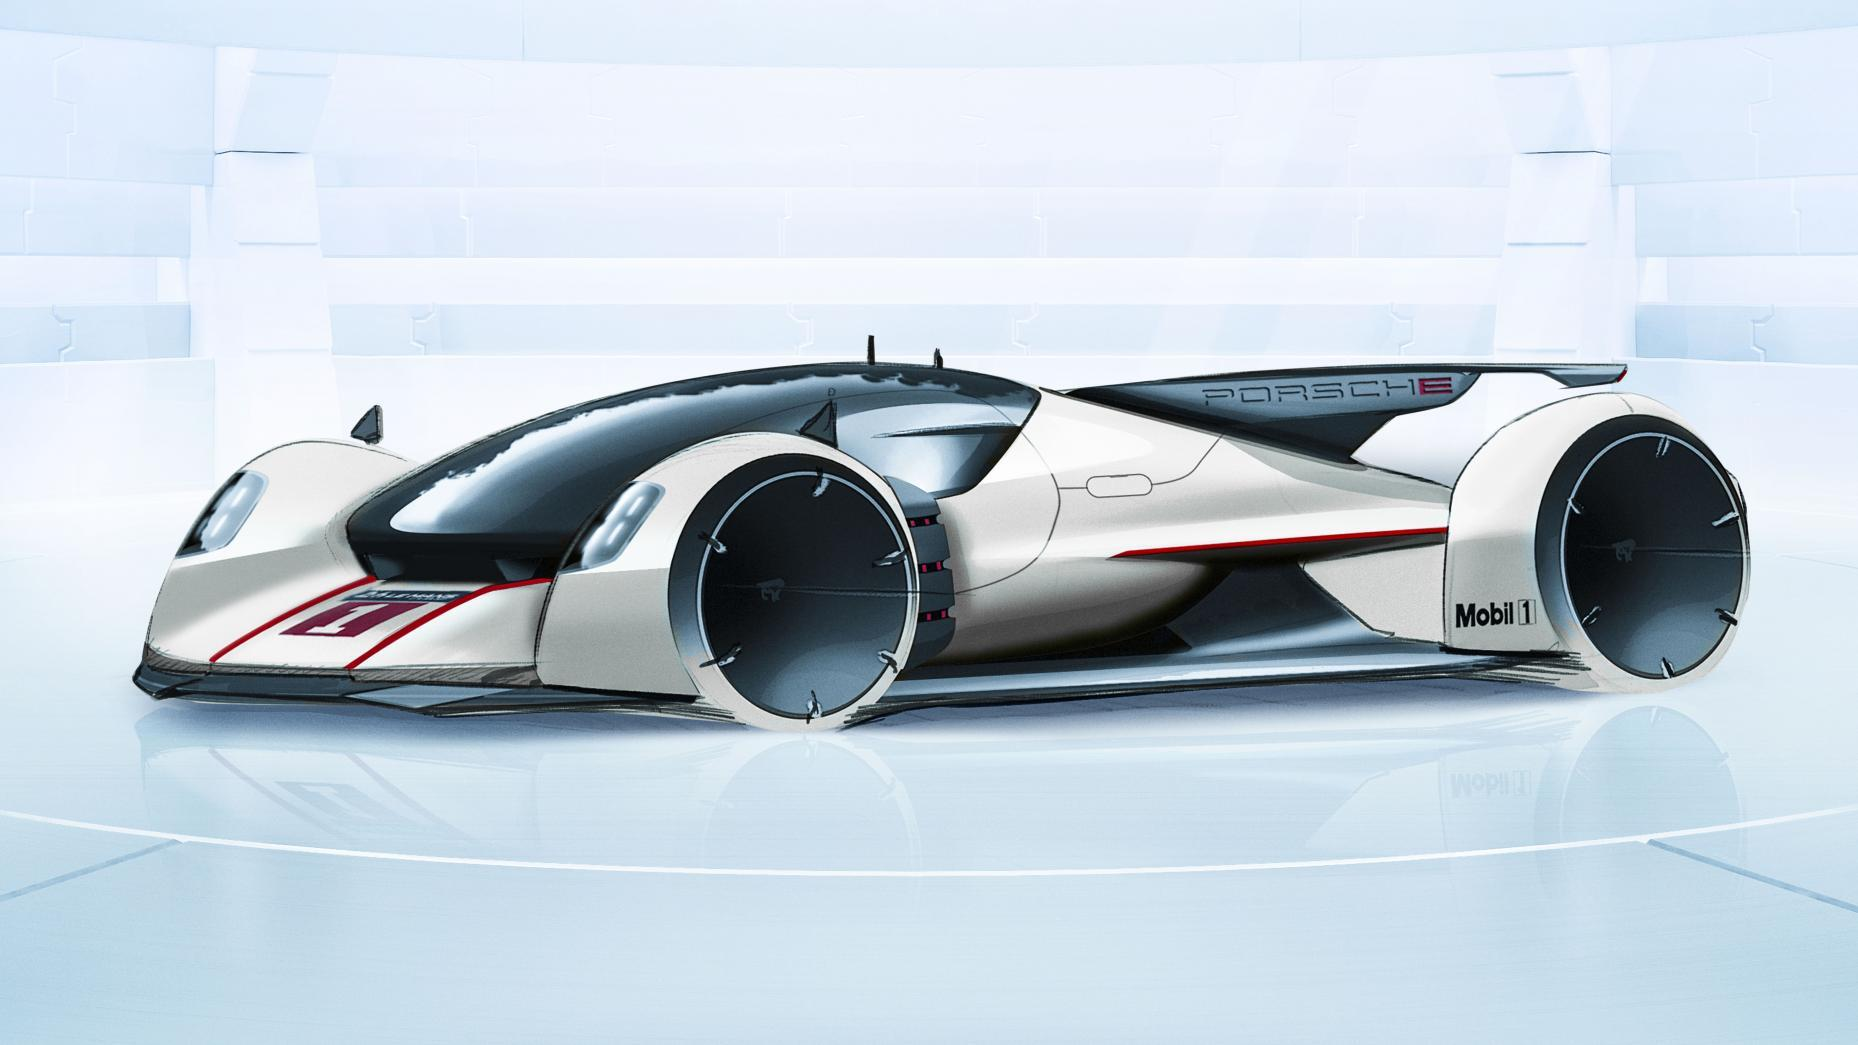 This is the future of motorsport. Probably